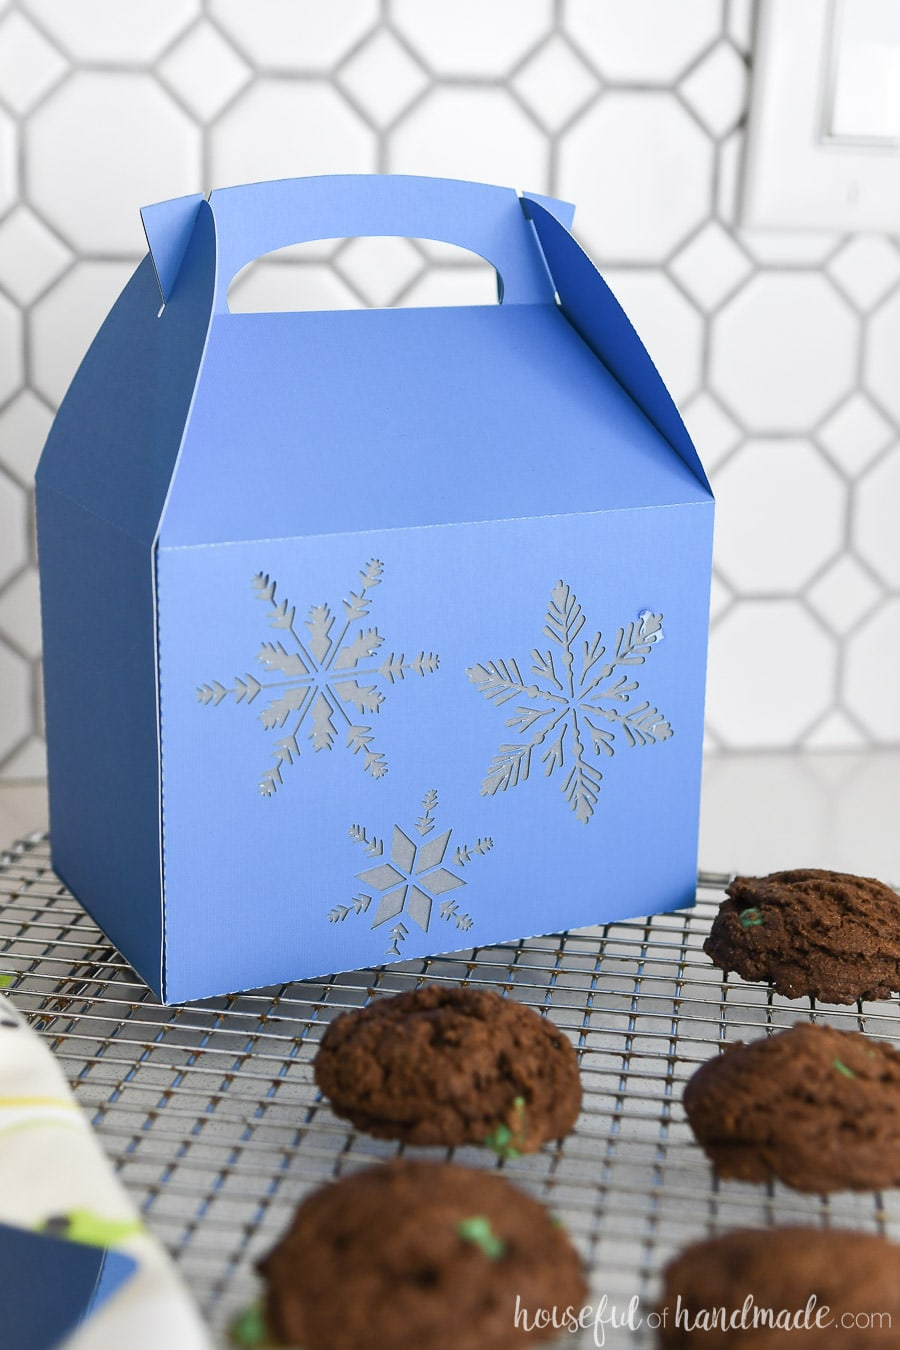 Blue Christas cookie box with snowflake design on a rack with homemade cookies.